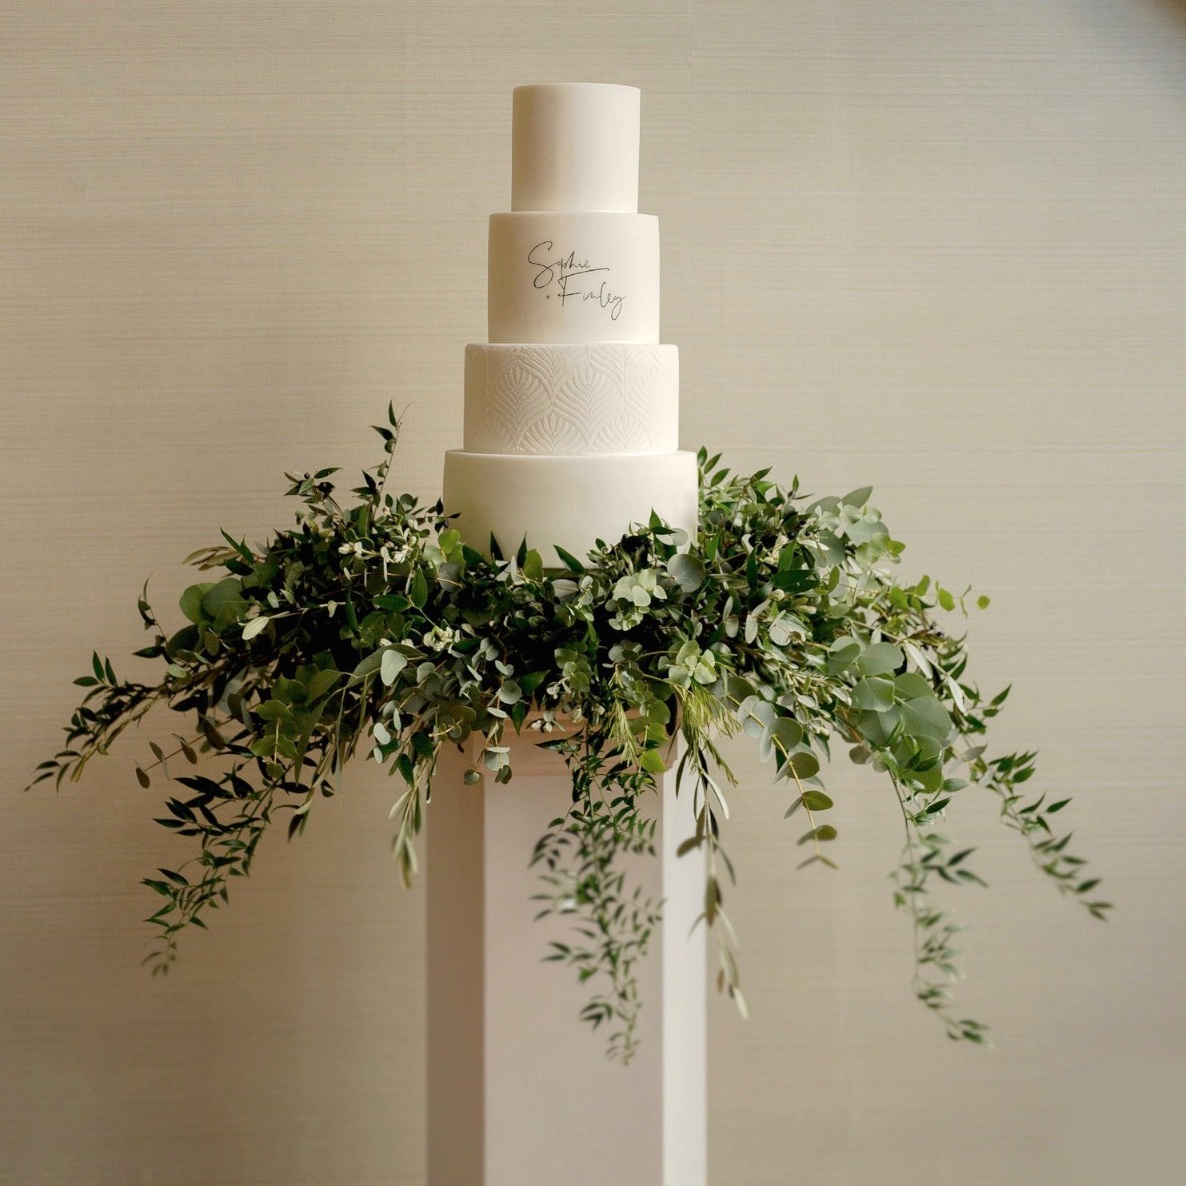 Plinth - Pentagonal plinth available to showcase your wedding cake. Why not get your florist to dress the borders.